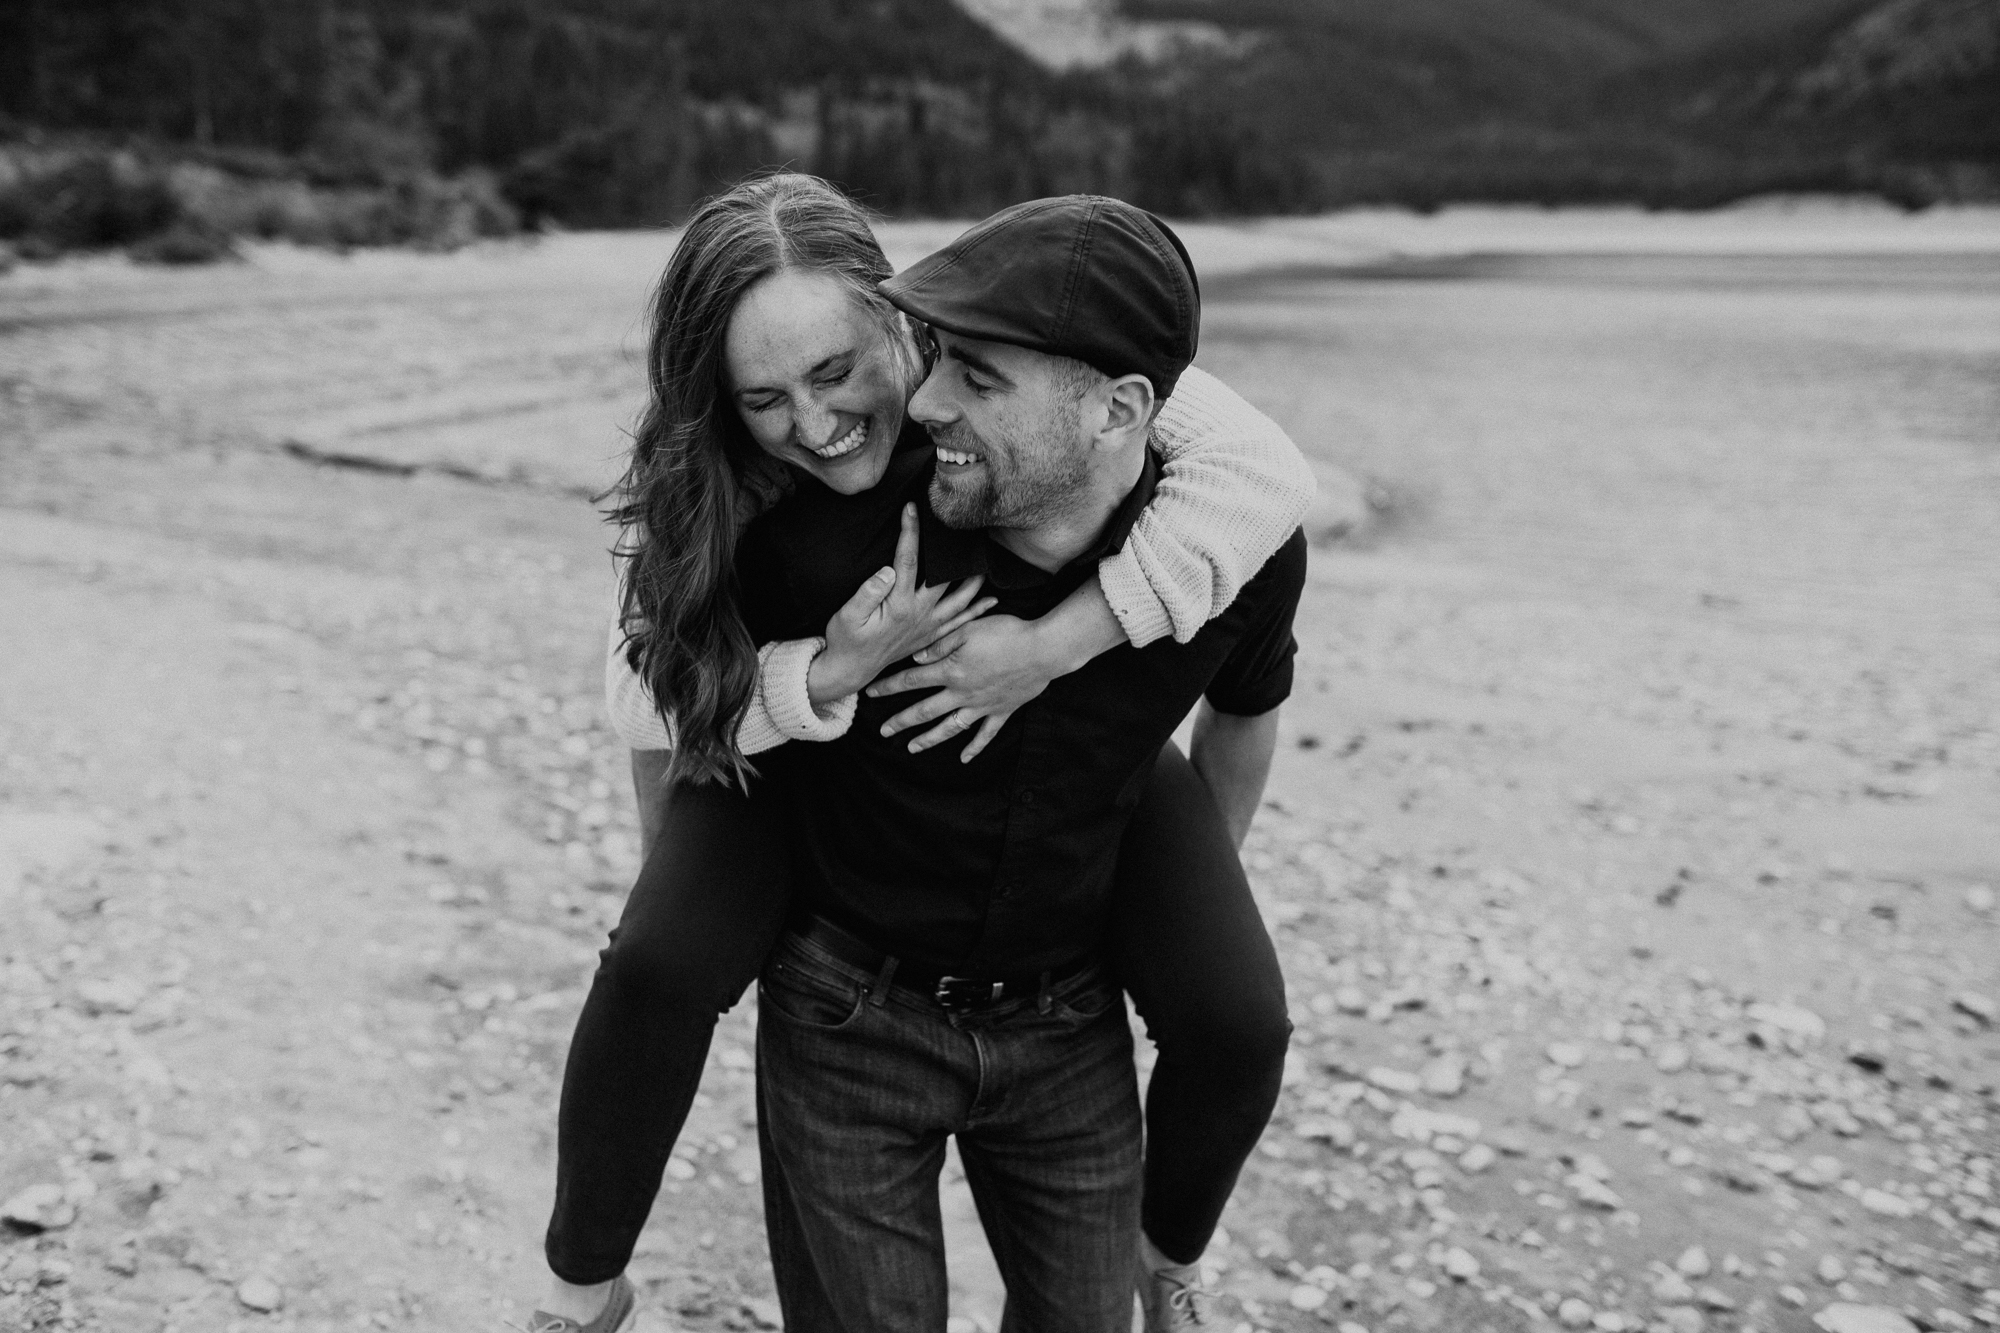 Kananaskis-engagement-session-photographer-jm-16.jpg